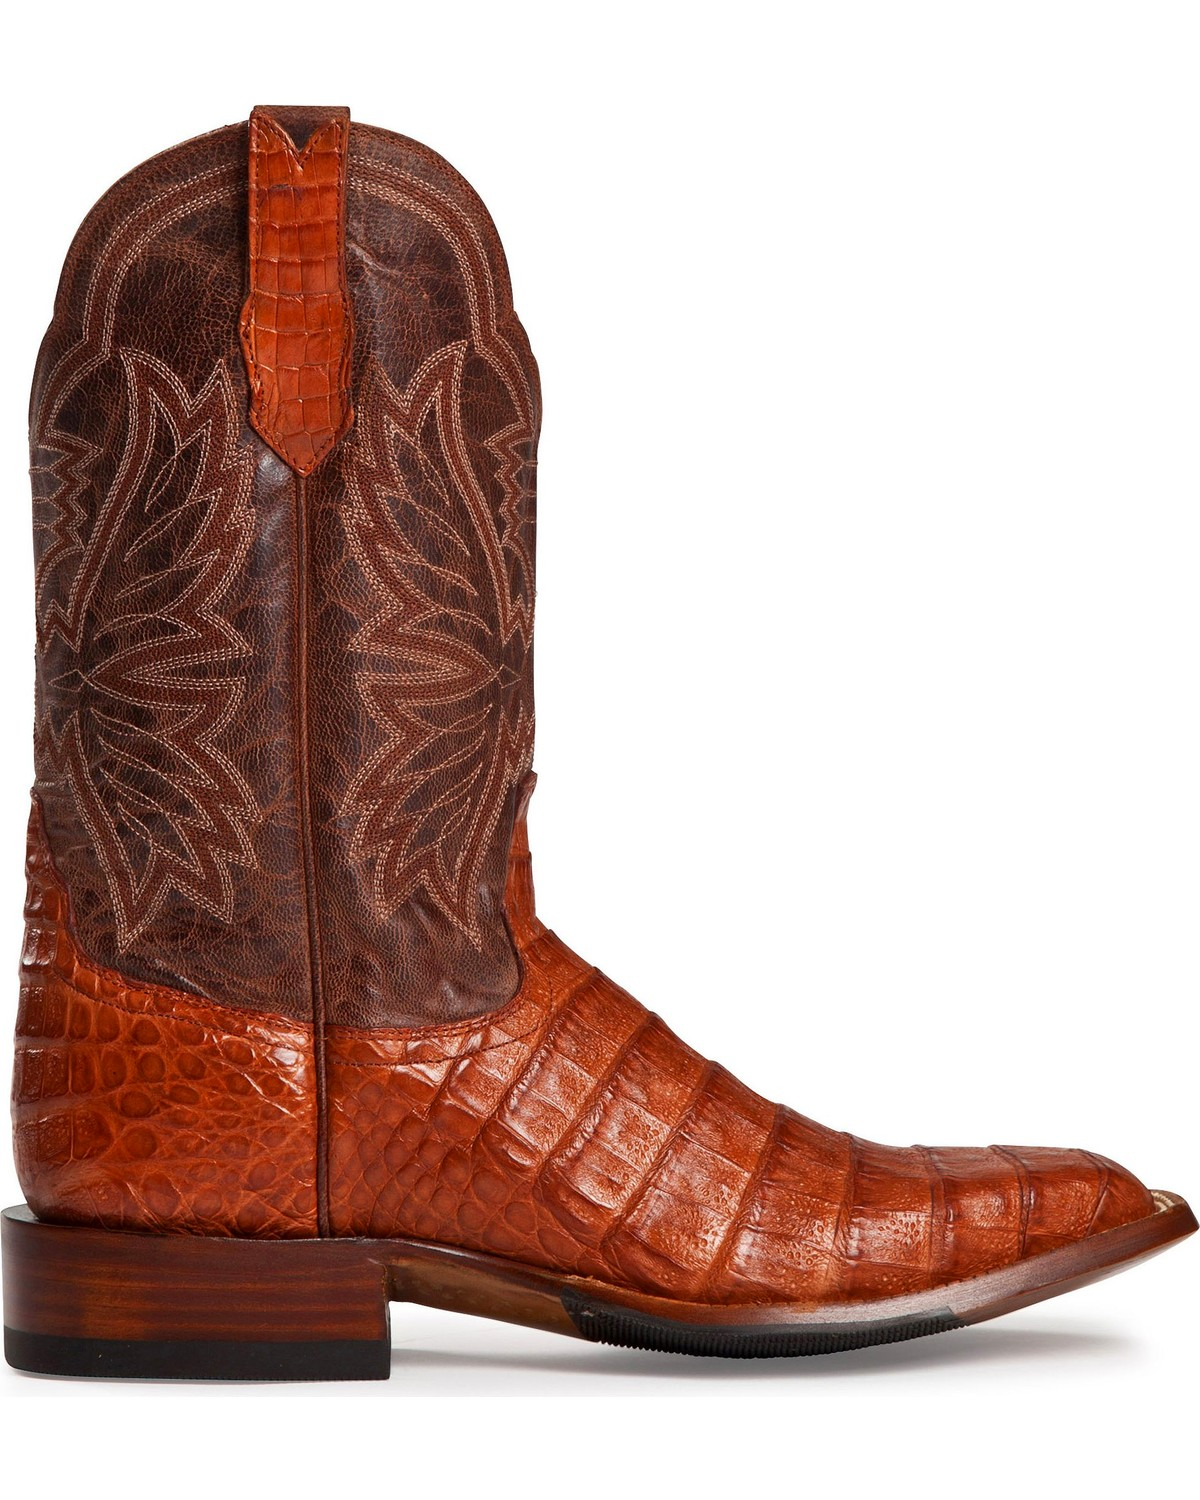 Cinch Classic Cognac Caiman Belly Mad Dog Cowboy Boots